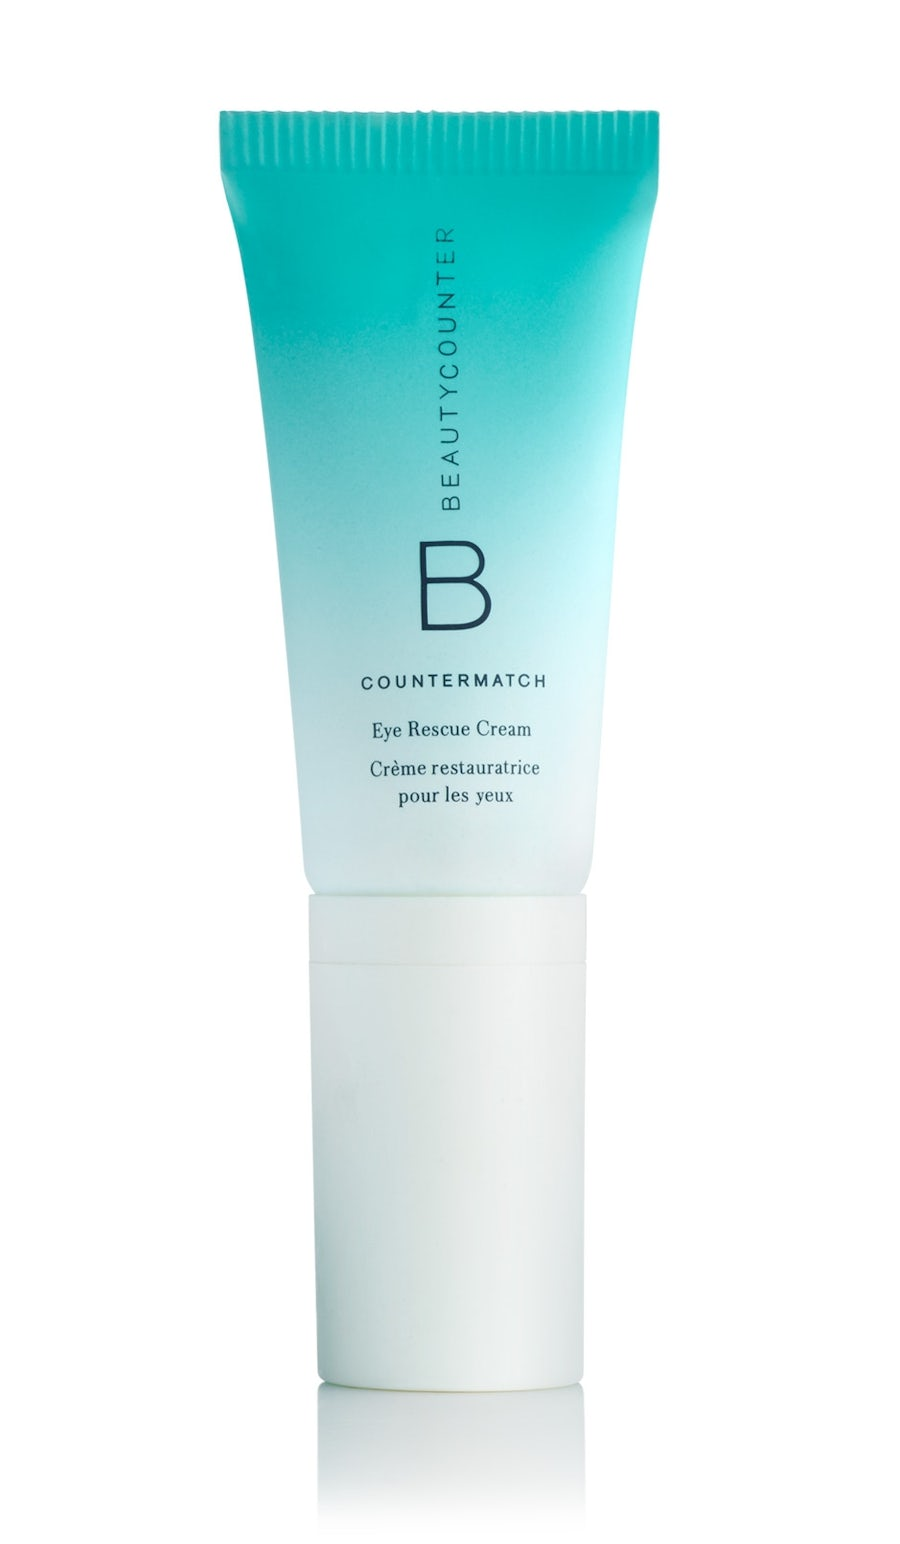 Countermatch Eye Rescue Cream